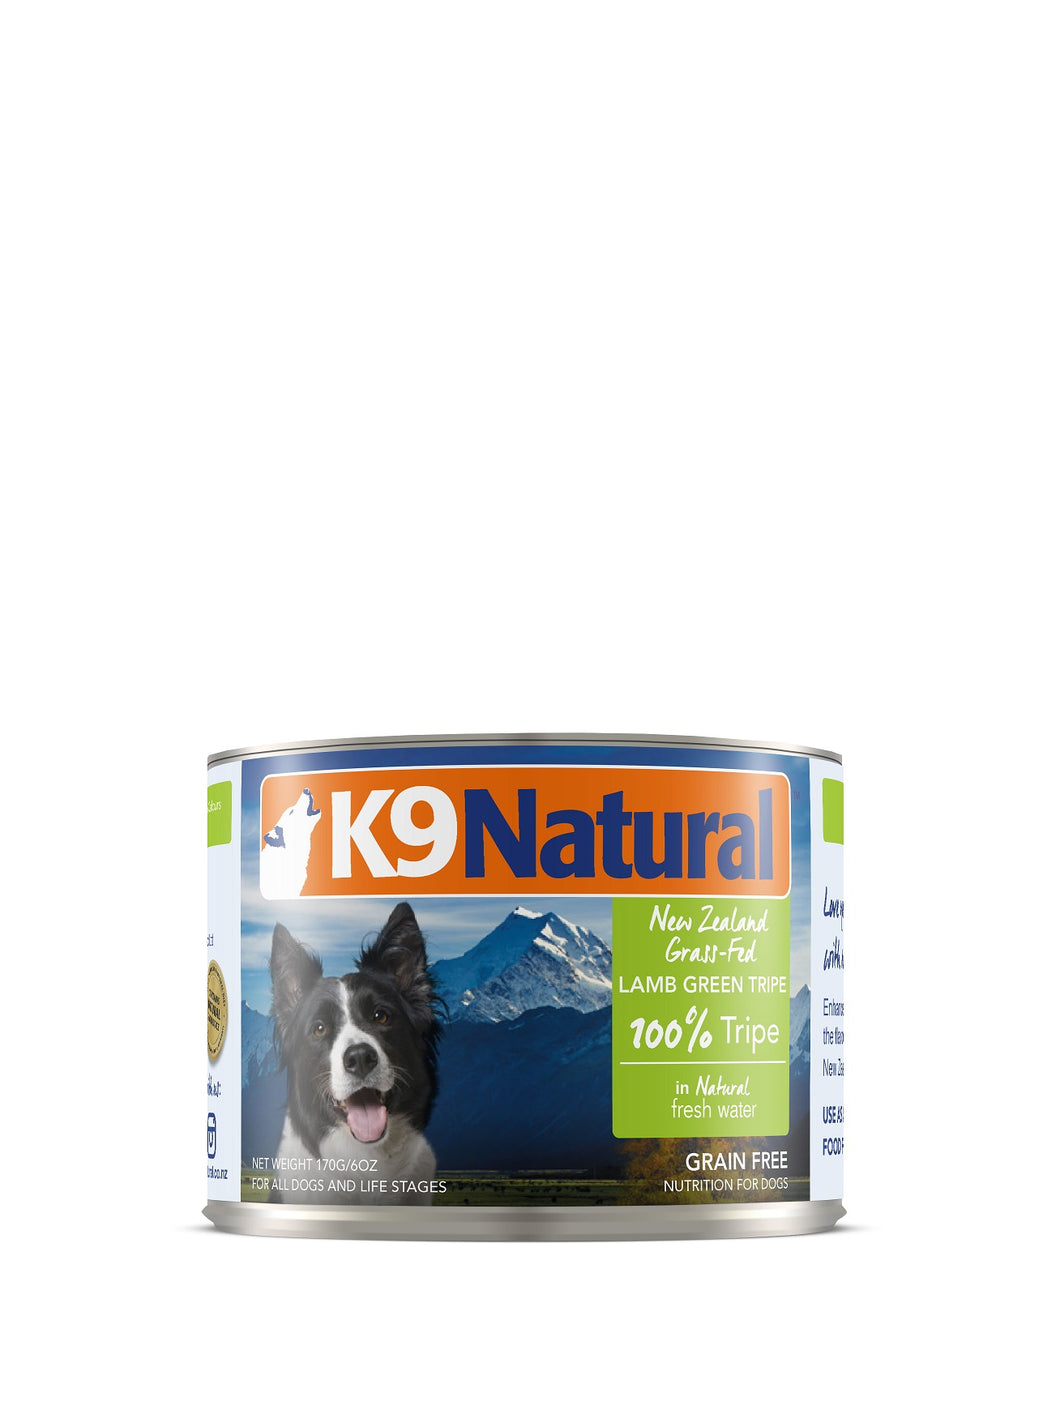 K9 Natural Canned - Lamb Green Tripe